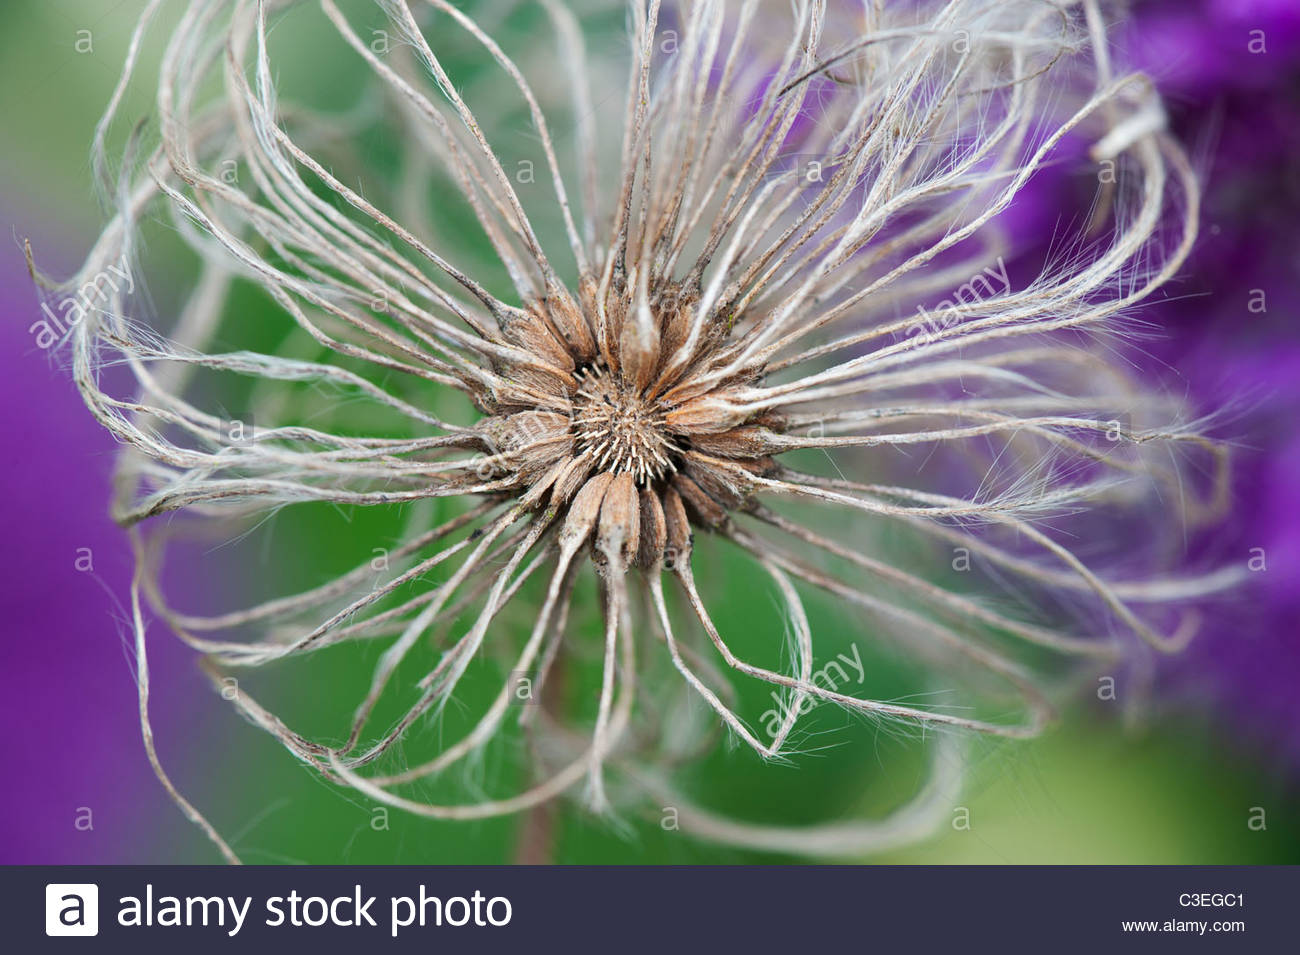 Clematis Boulevard flower seed head against purple allium flower Stock